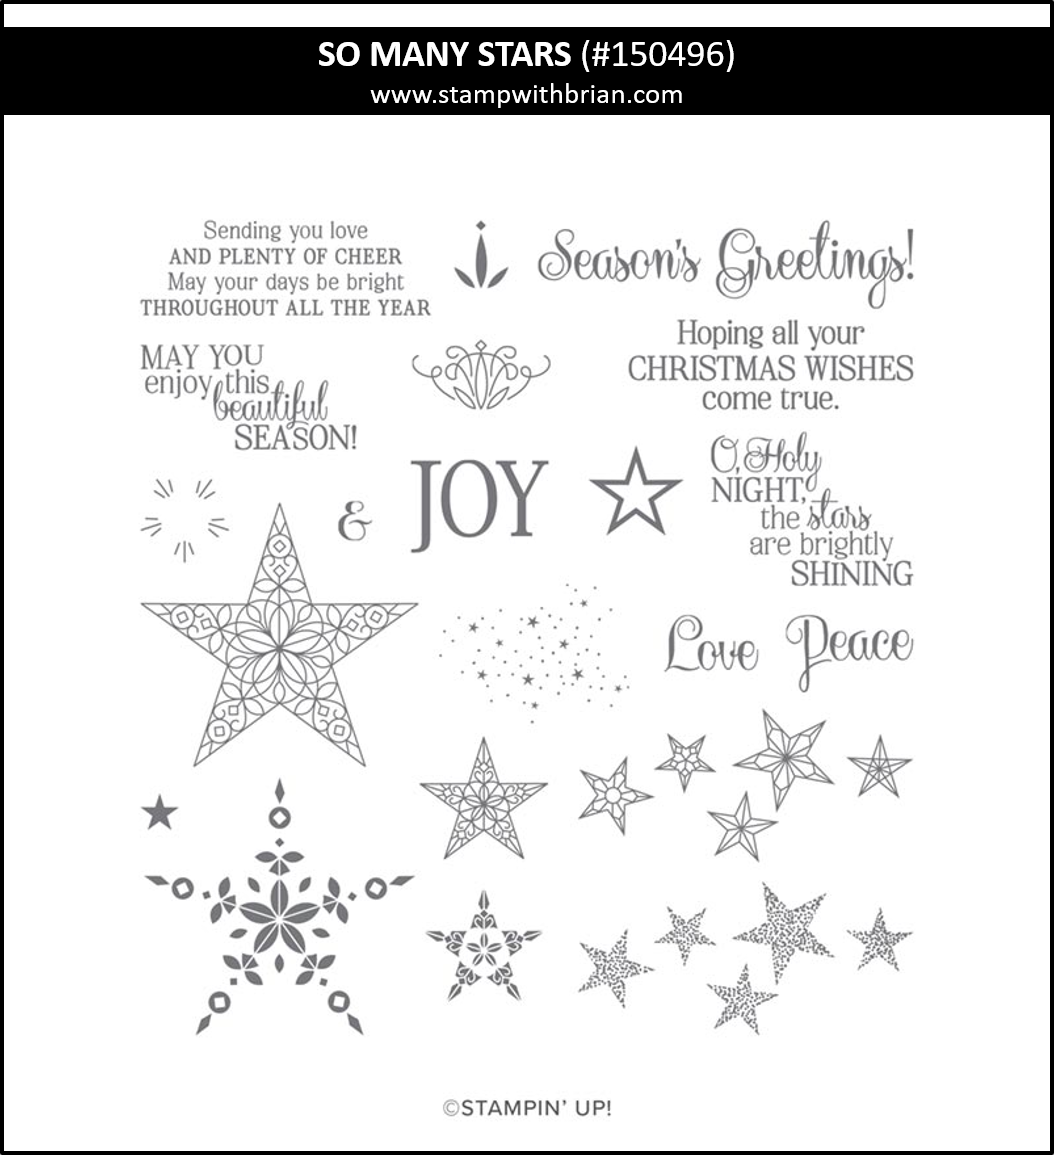 So Many Stars, Stampin' Up! 150496